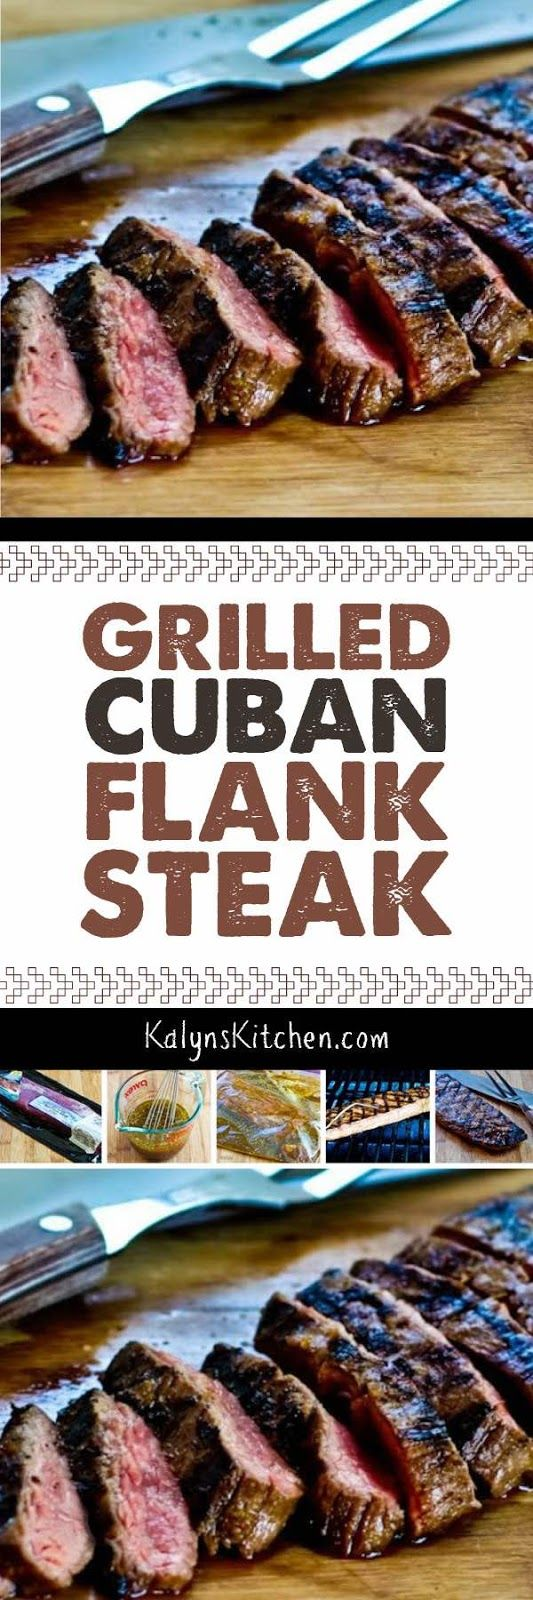 Grilled Cuban Flank Steak starts with a tasty marinade that's loaded with Cuban flavors; then the flank steak is grilled for a delightful main dish that's low-carb, Keto, low-glycemic, gluten-free, and South Beach Diet friendly. And if you switch the soy sauce for coconut aminos, this tasty flank steak can easily be Paleo or Whole 30 approved as well! [found on KalynsKitchen.com]